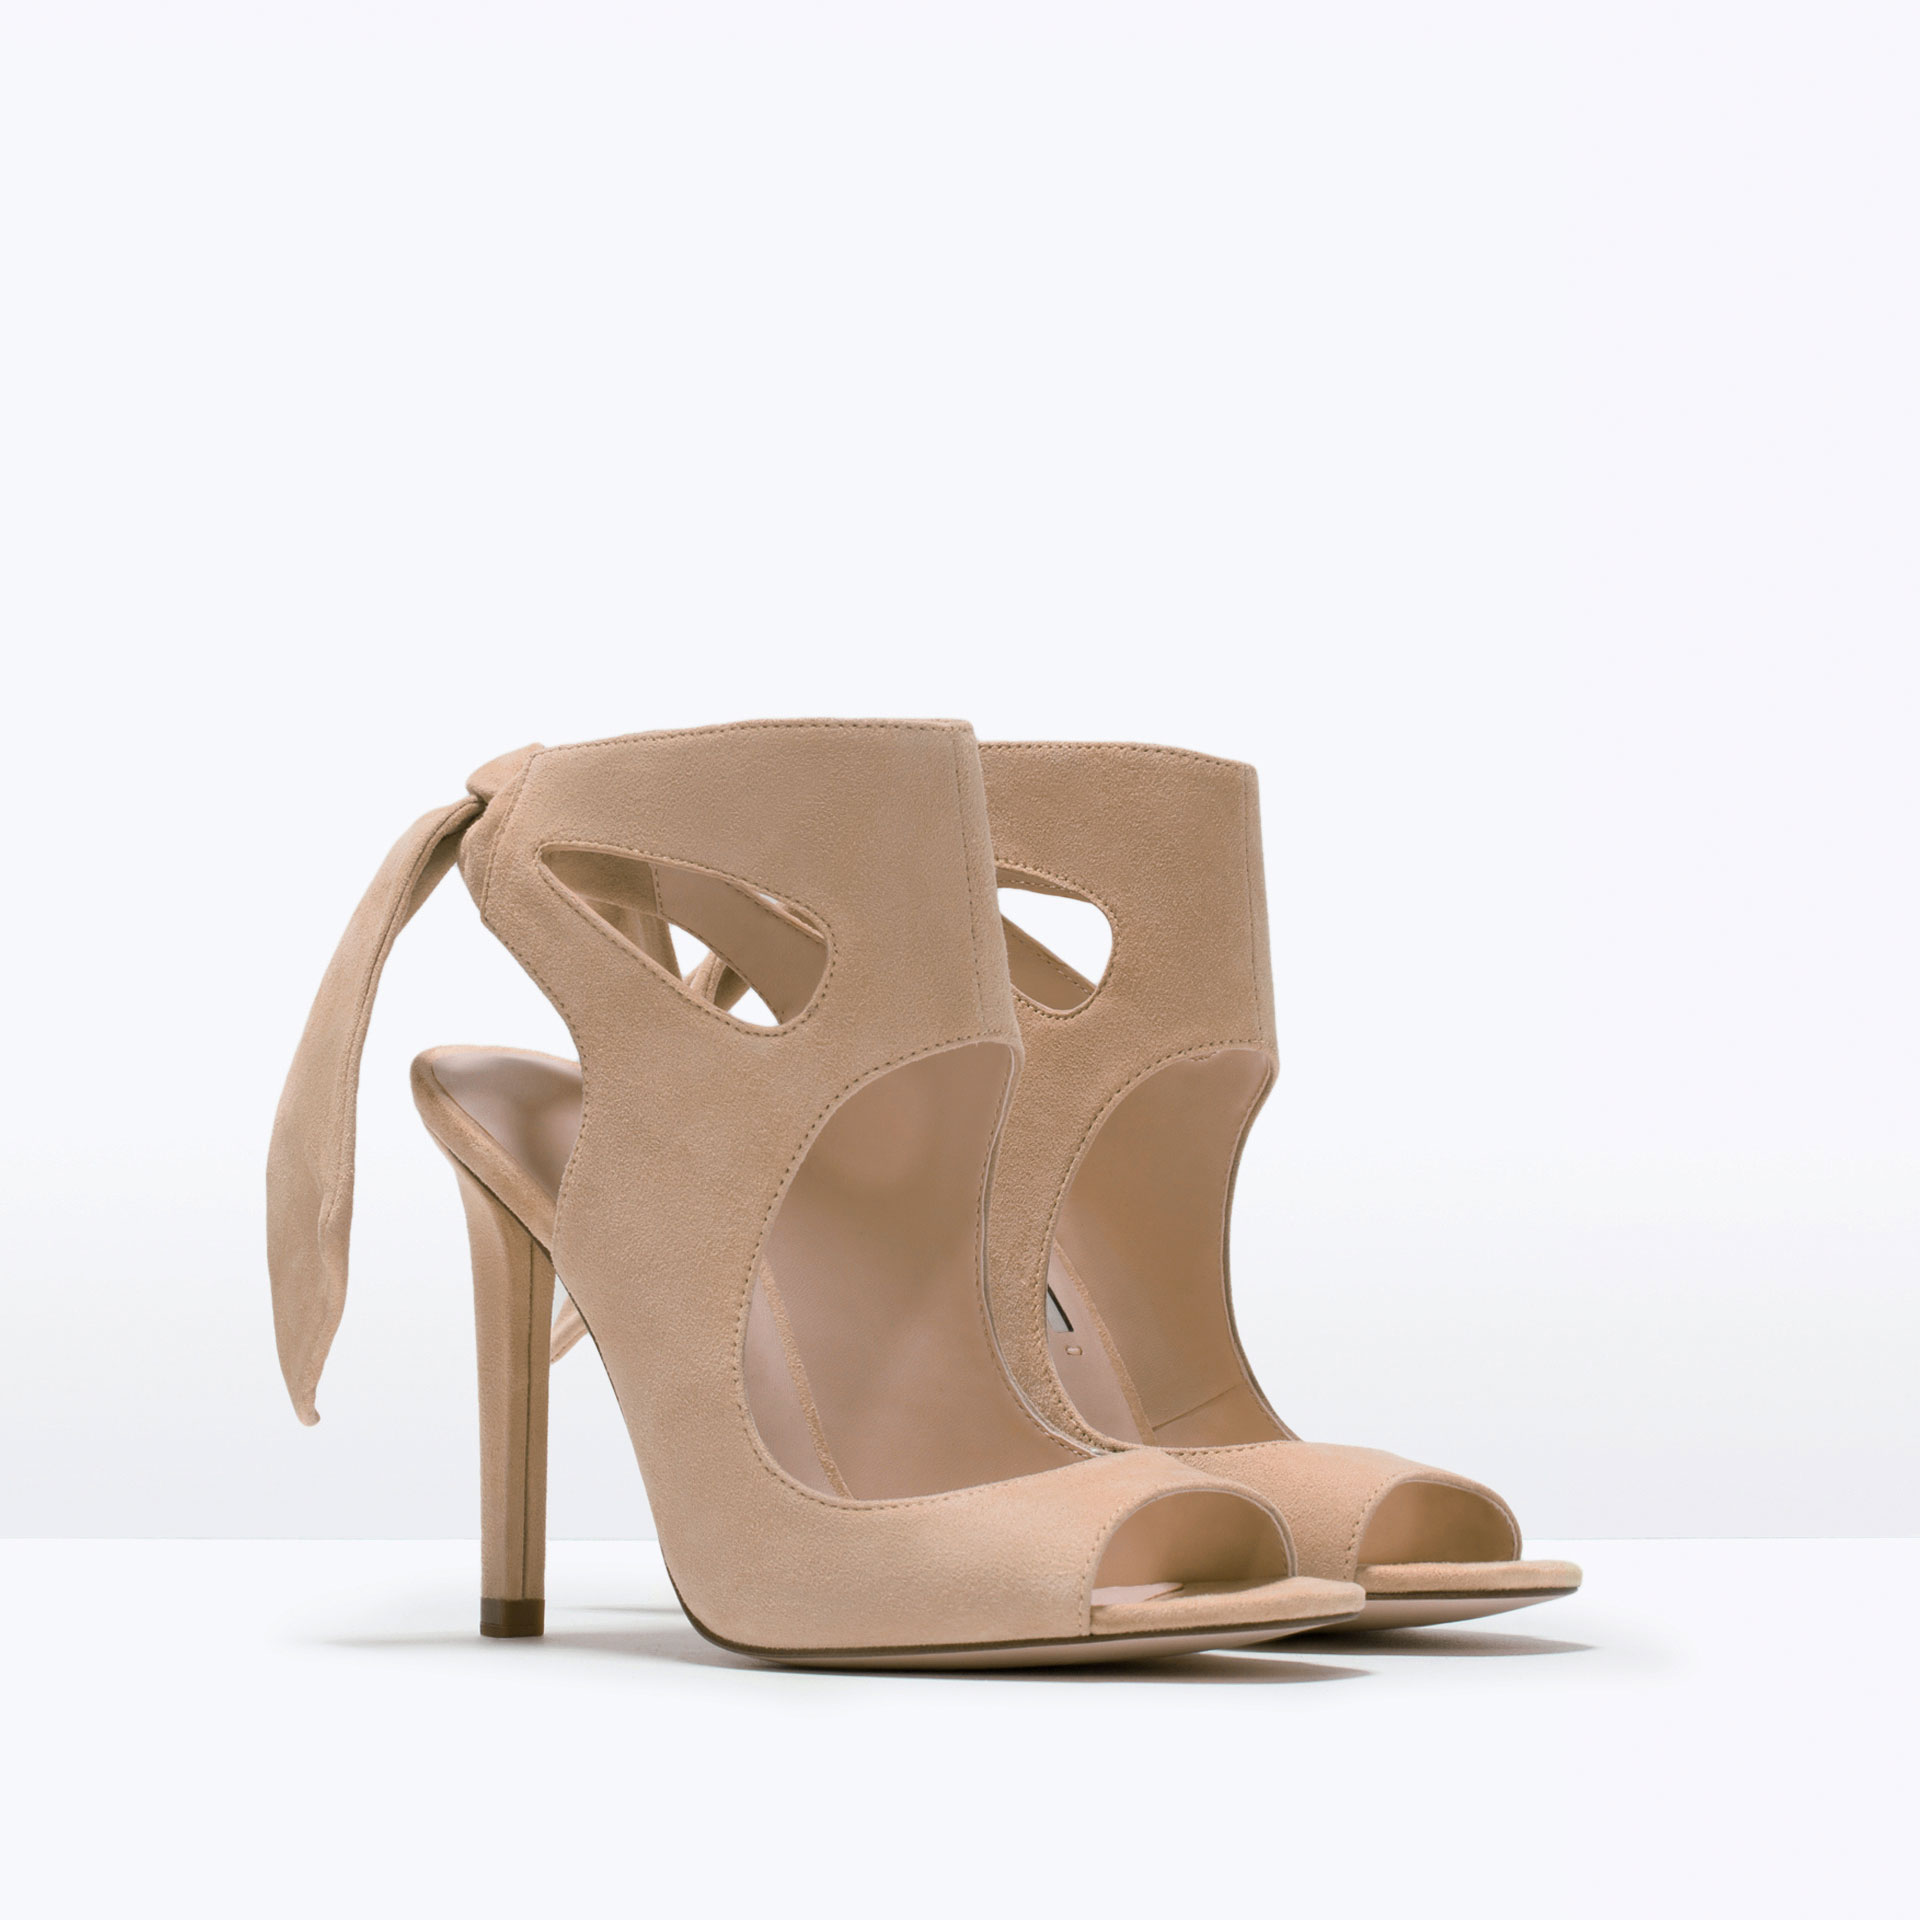 Donna Shoeplay Scarpe Di Fashion N87xnr Zara Blog Da Sandali Fiocco ZTwPkiOXu